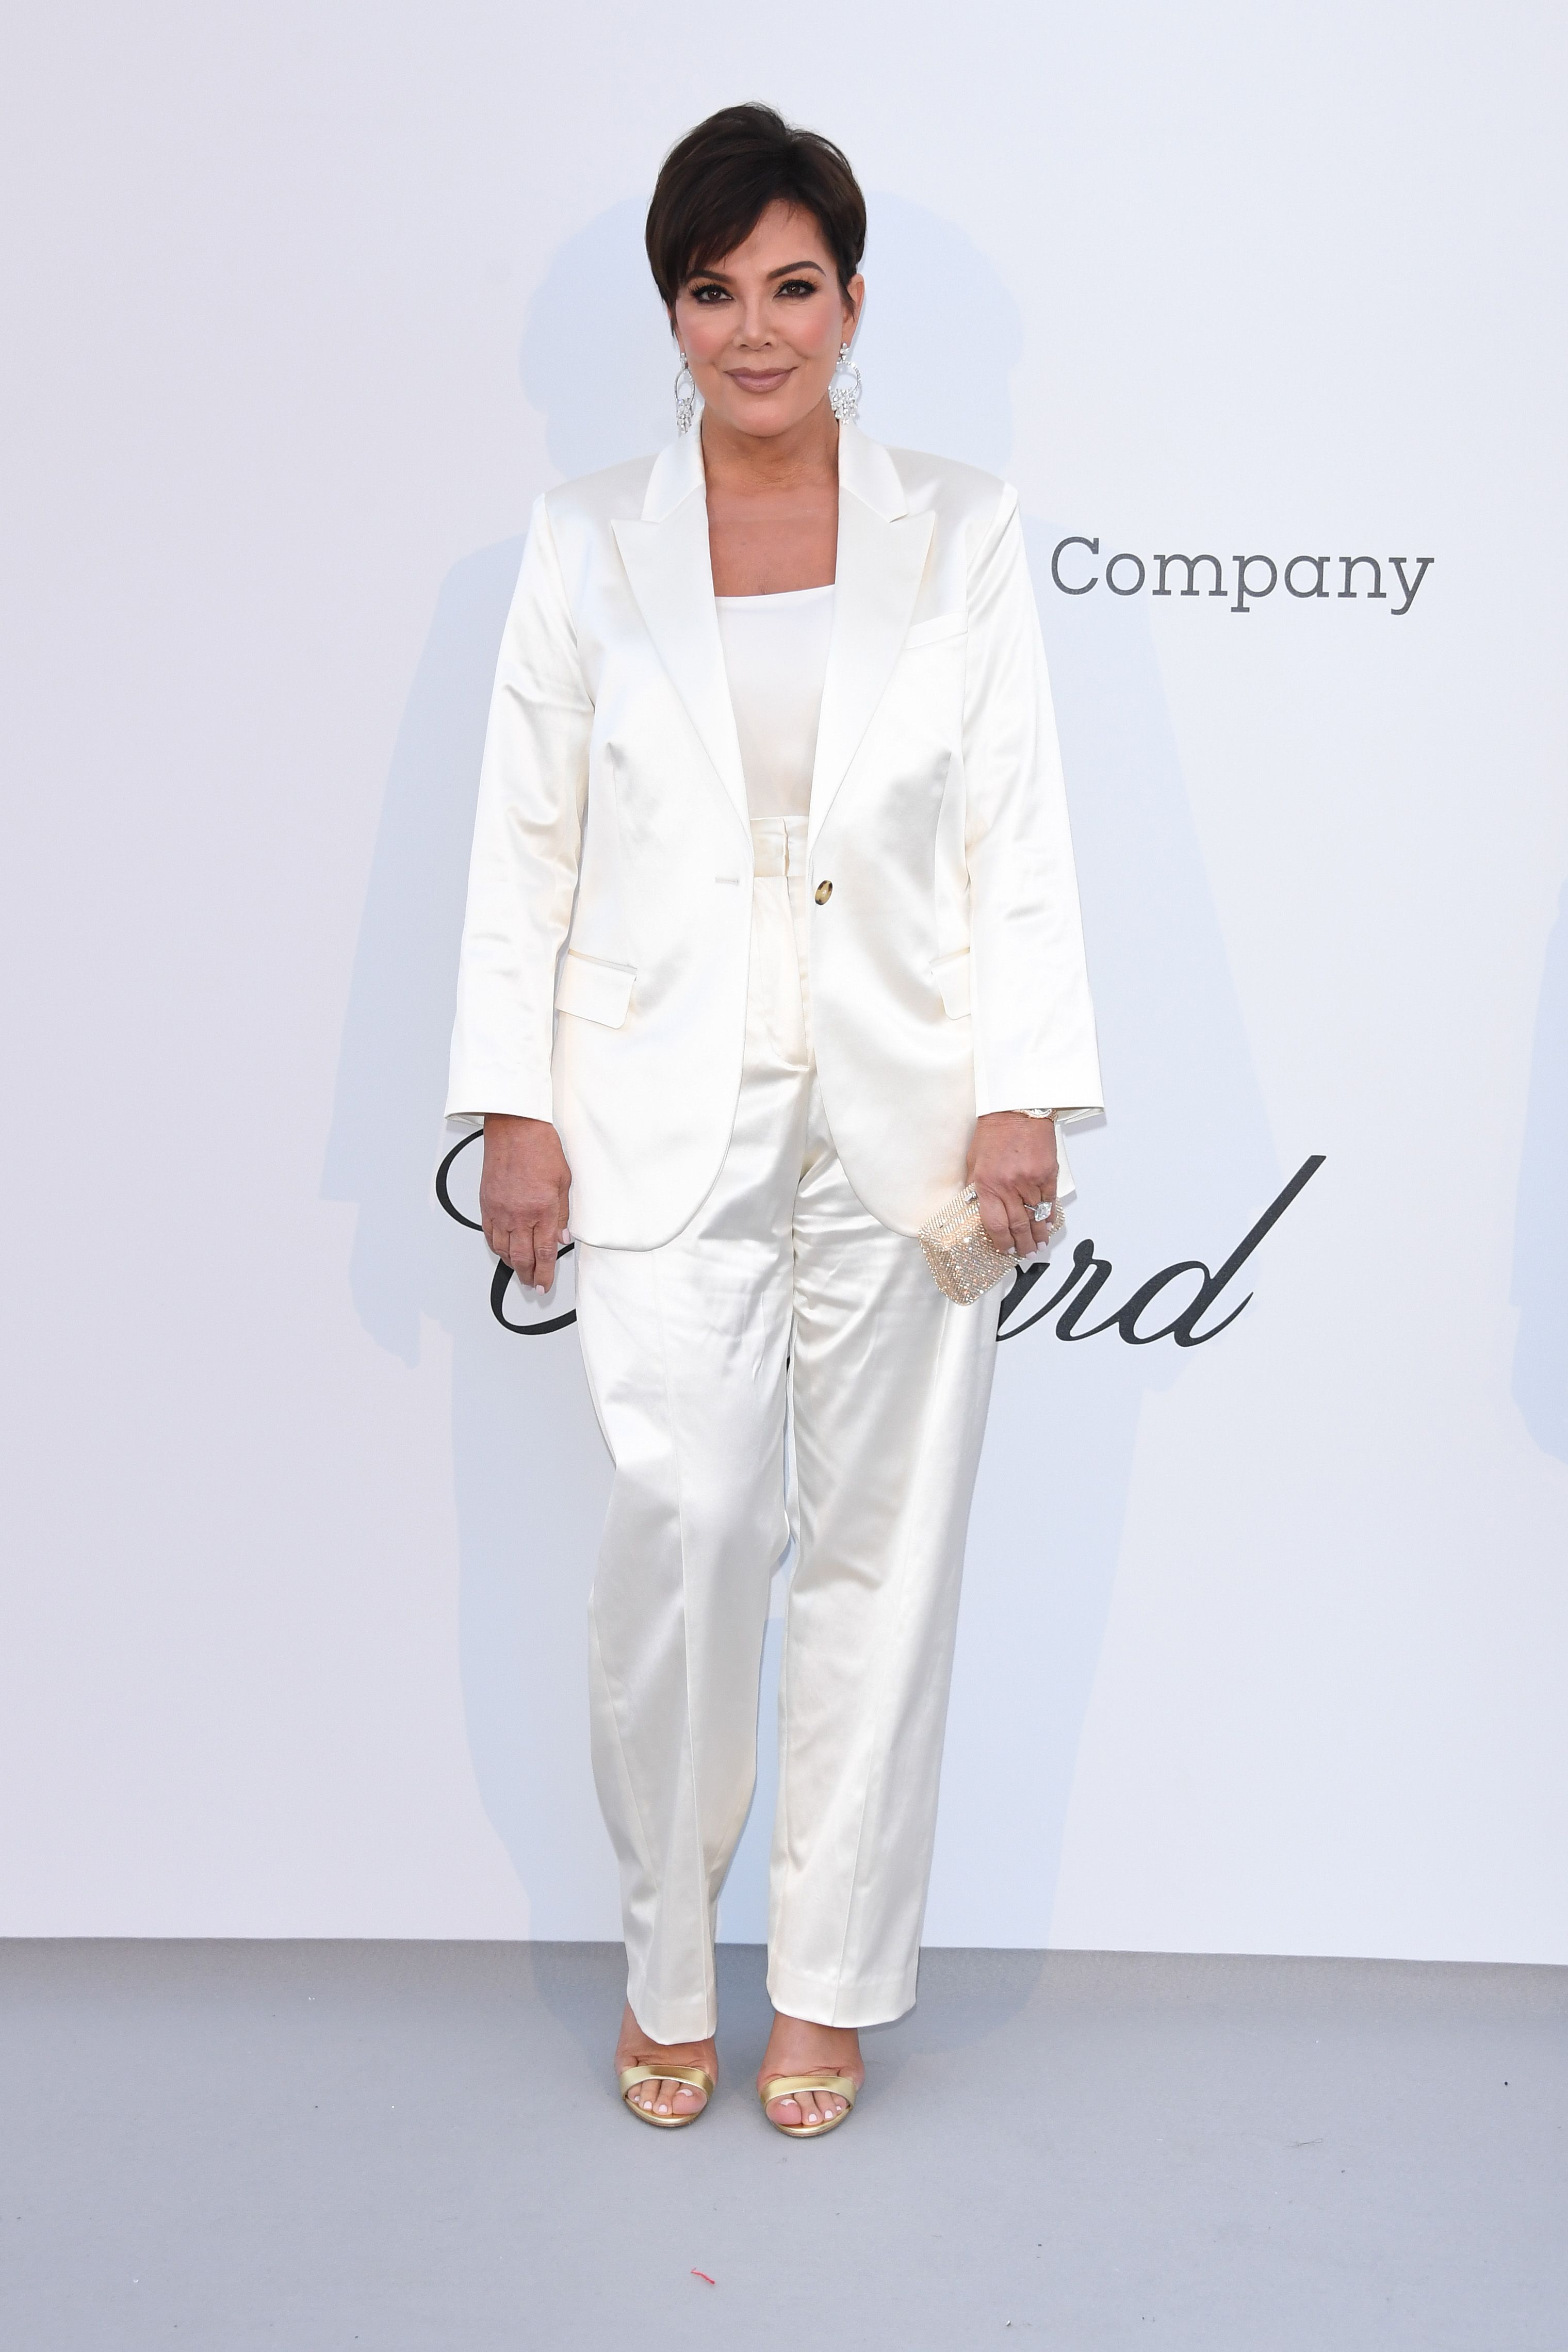 Kris Jenner In a white silk suit.